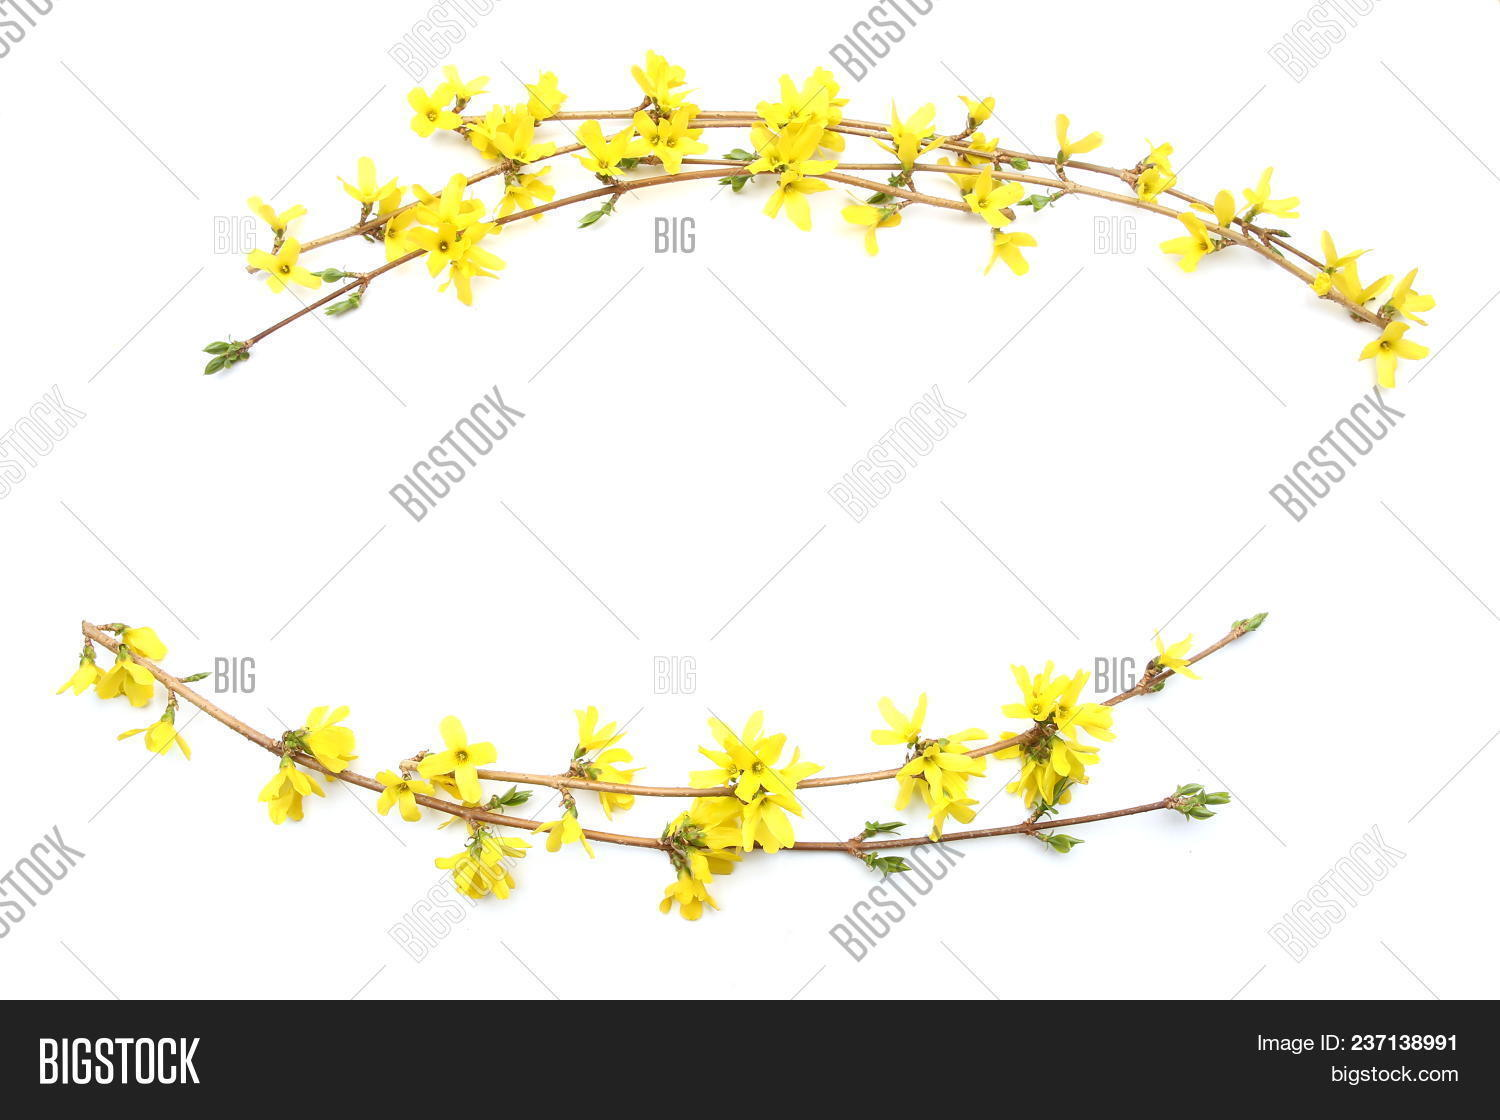 Forsythia Branches Image Photo Free Trial Bigstock